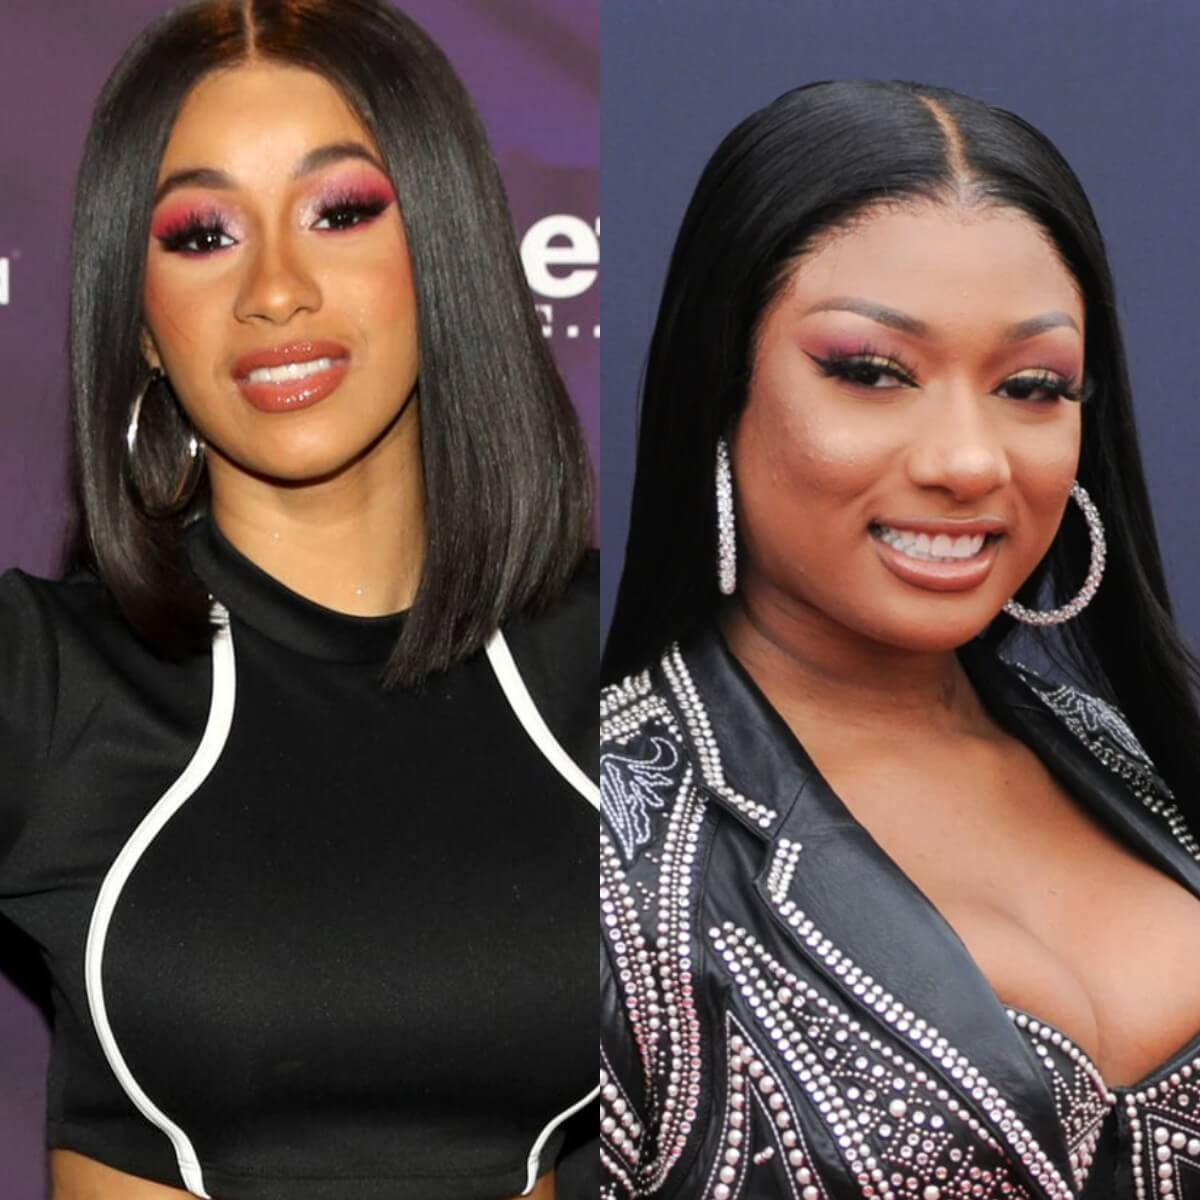 August 4, 2020 Cardi B & Megan Thee Stallion Set To Release Collabo Single 'WAP'